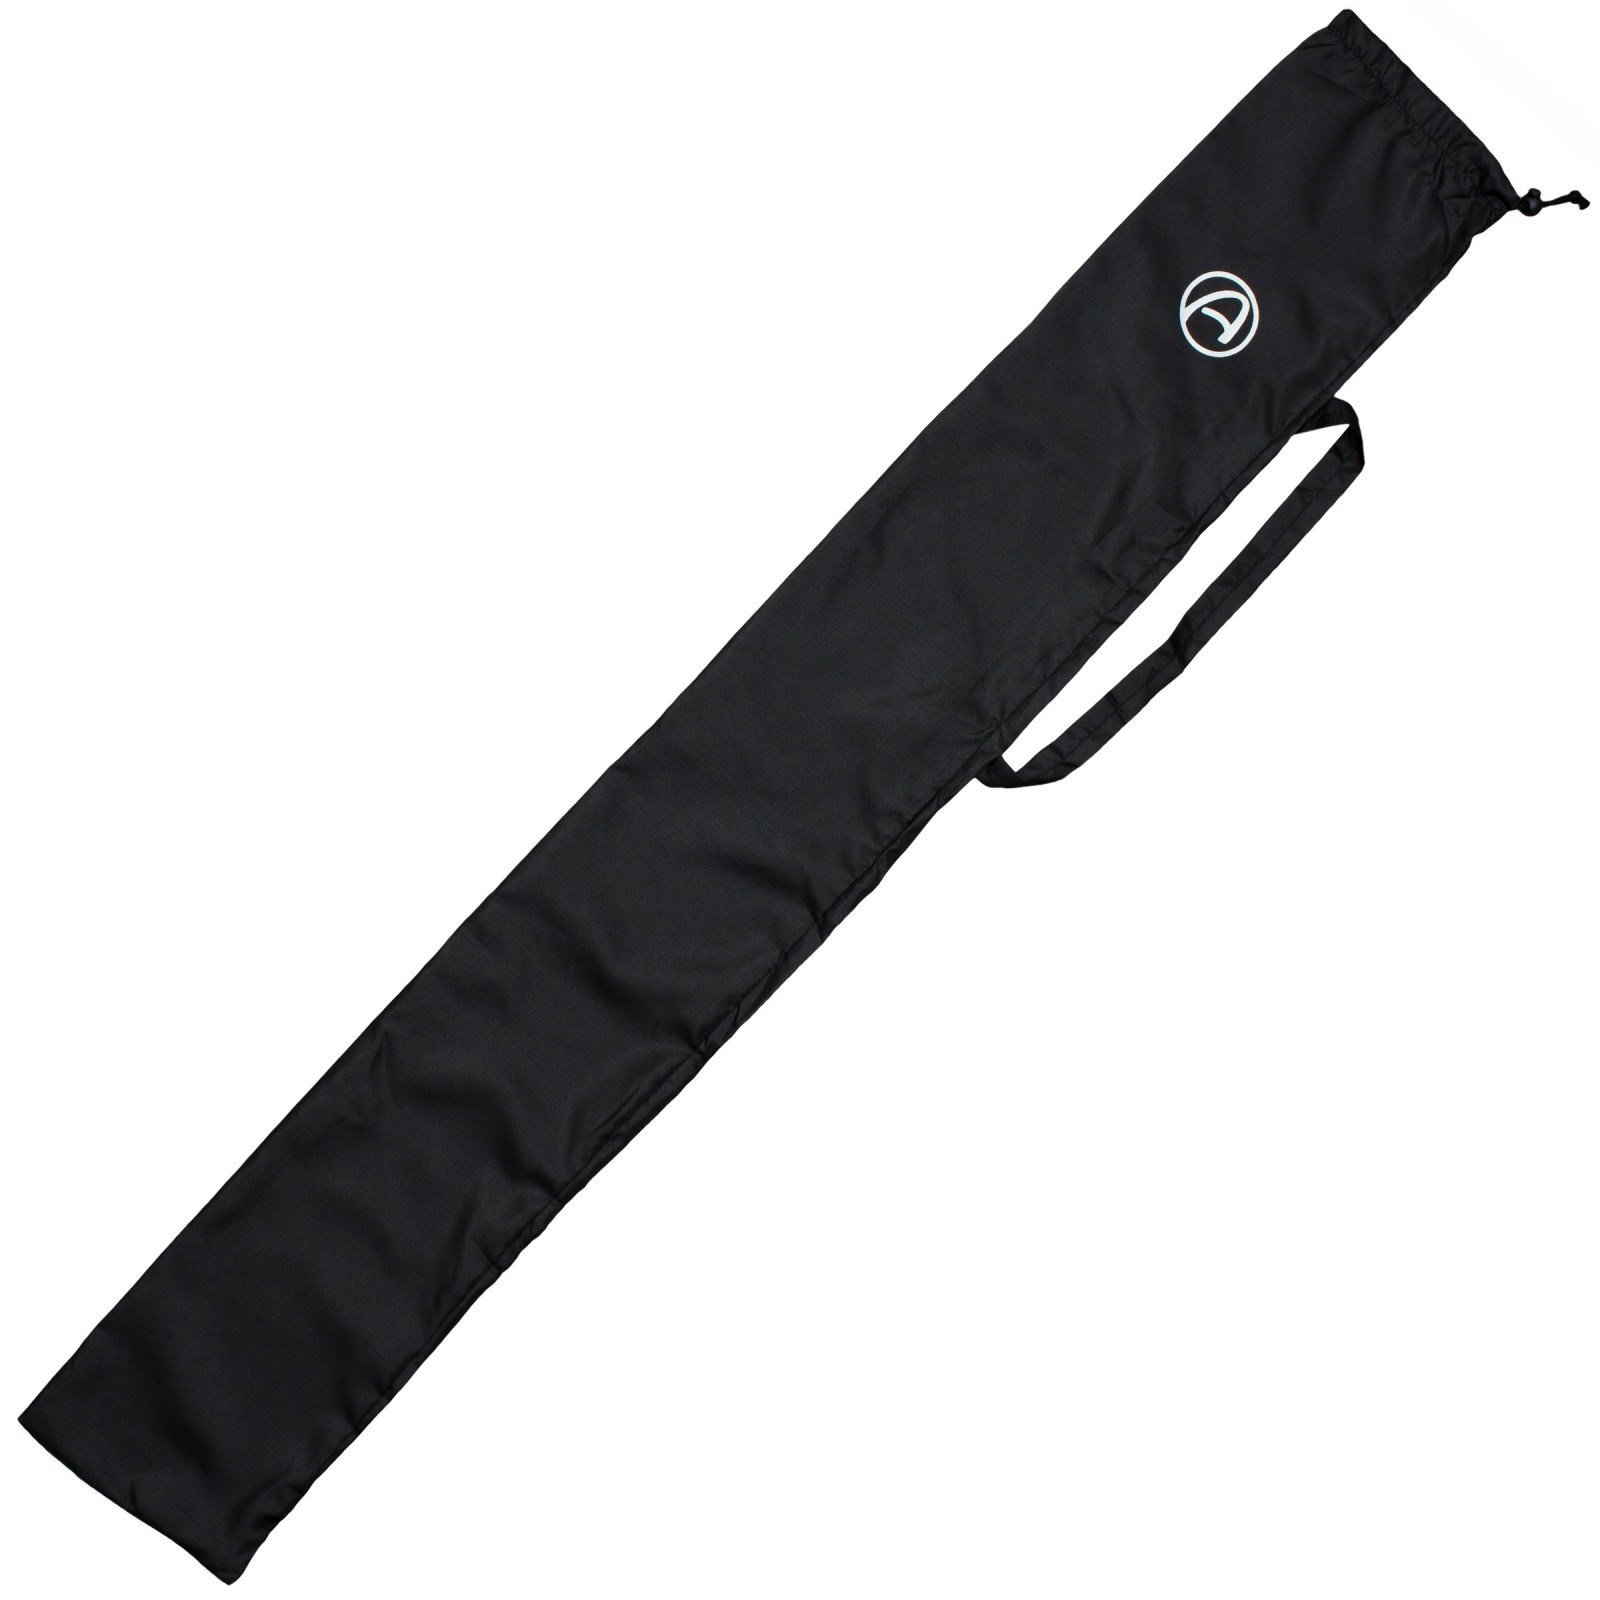 Didgeridoo Nylon Bag  135cm